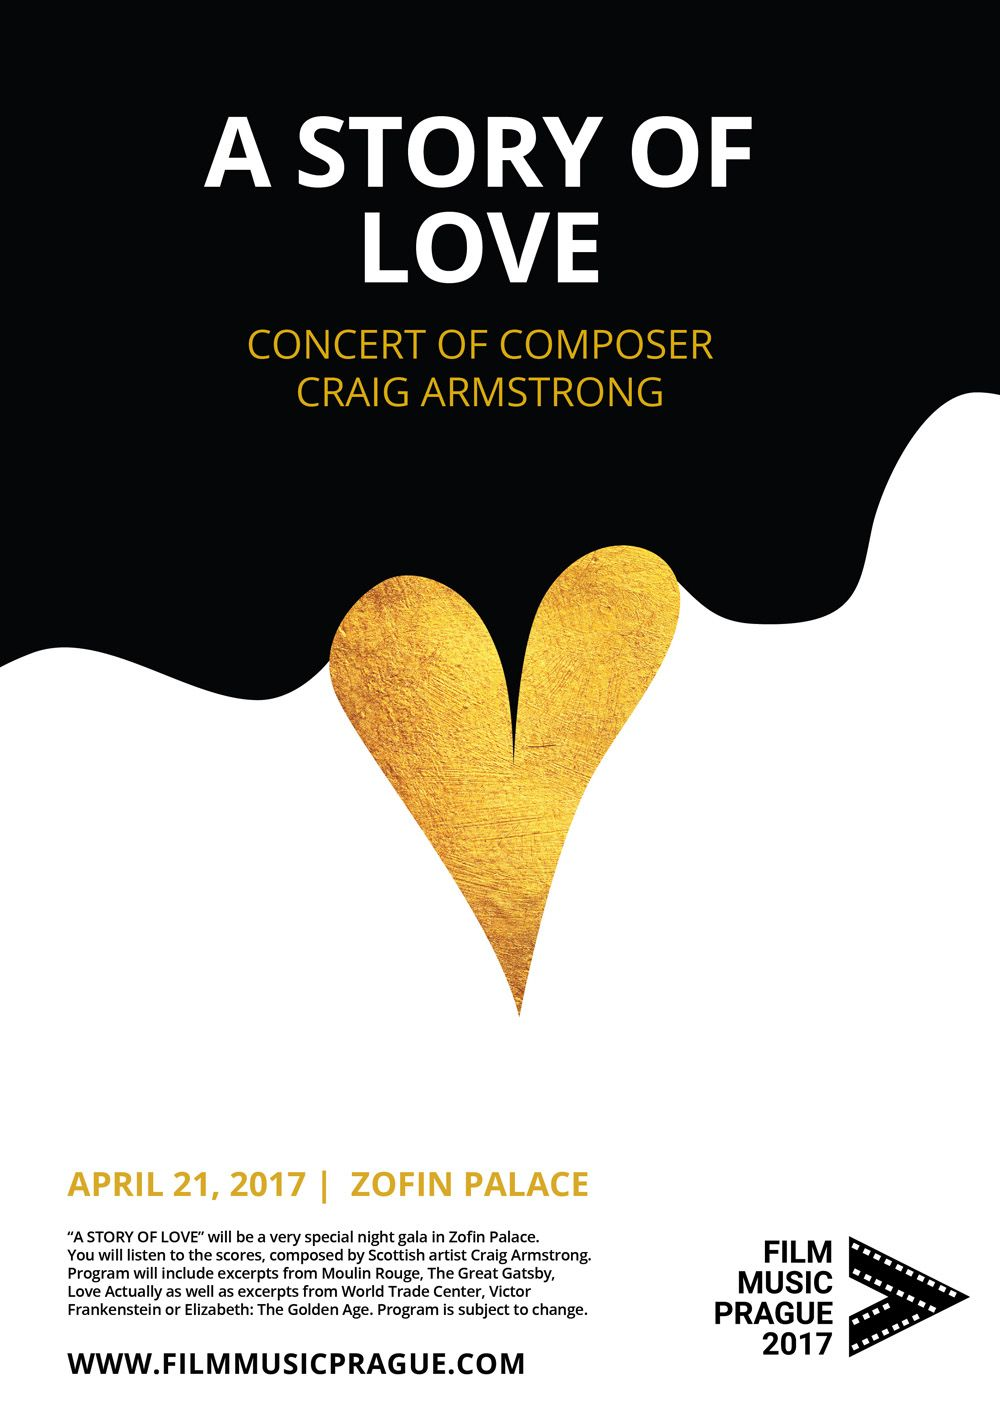 FSM Board: FILM MUSIC PRAGUE: Craig Armstrong - 21 April 2017